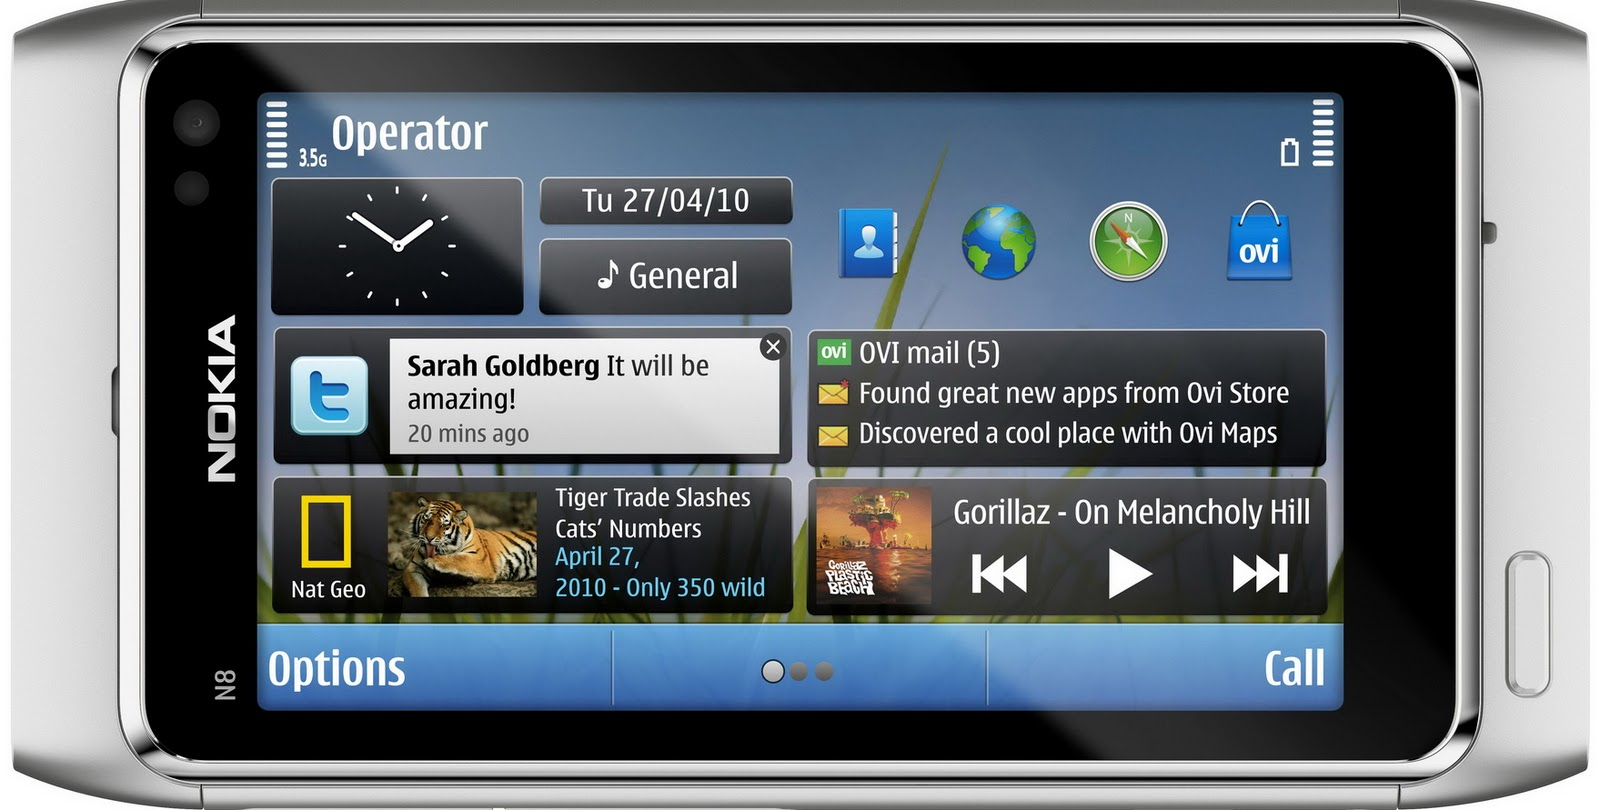 How To Get And Install Applications For Nokia Phones | Apps ...